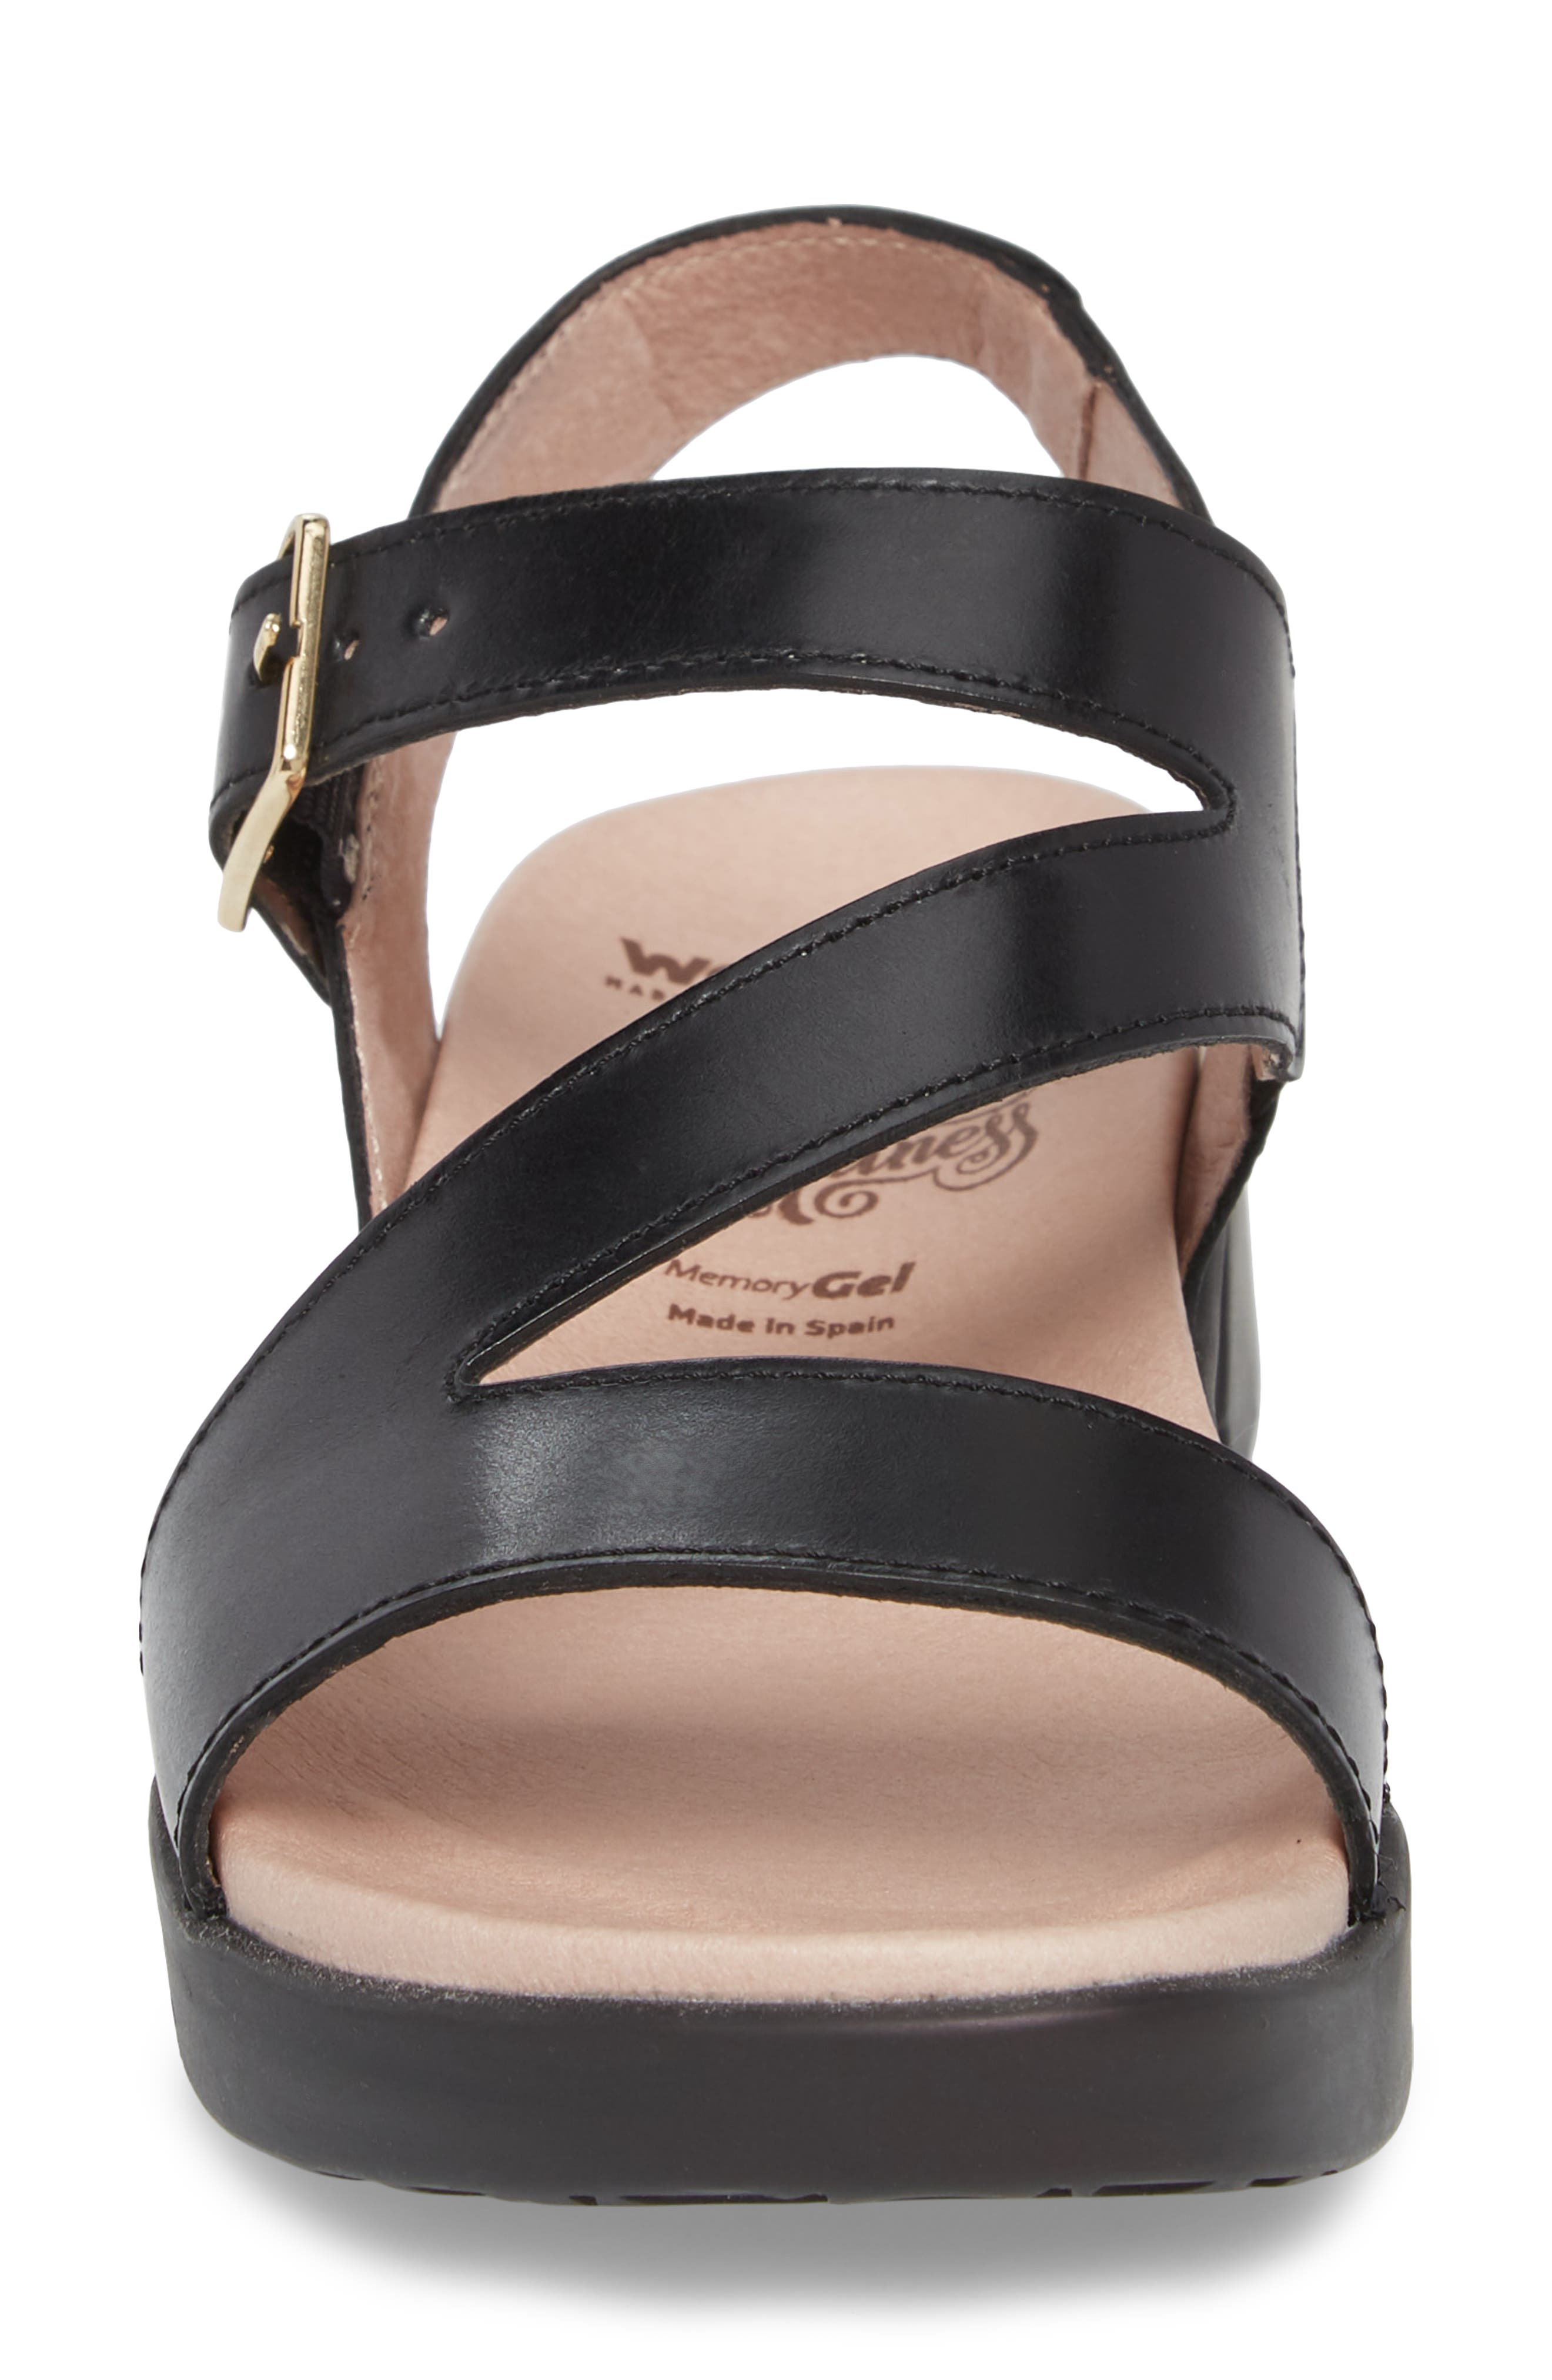 Platform Wedge Sandal,                             Alternate thumbnail 4, color,                             BLACK LEATHER